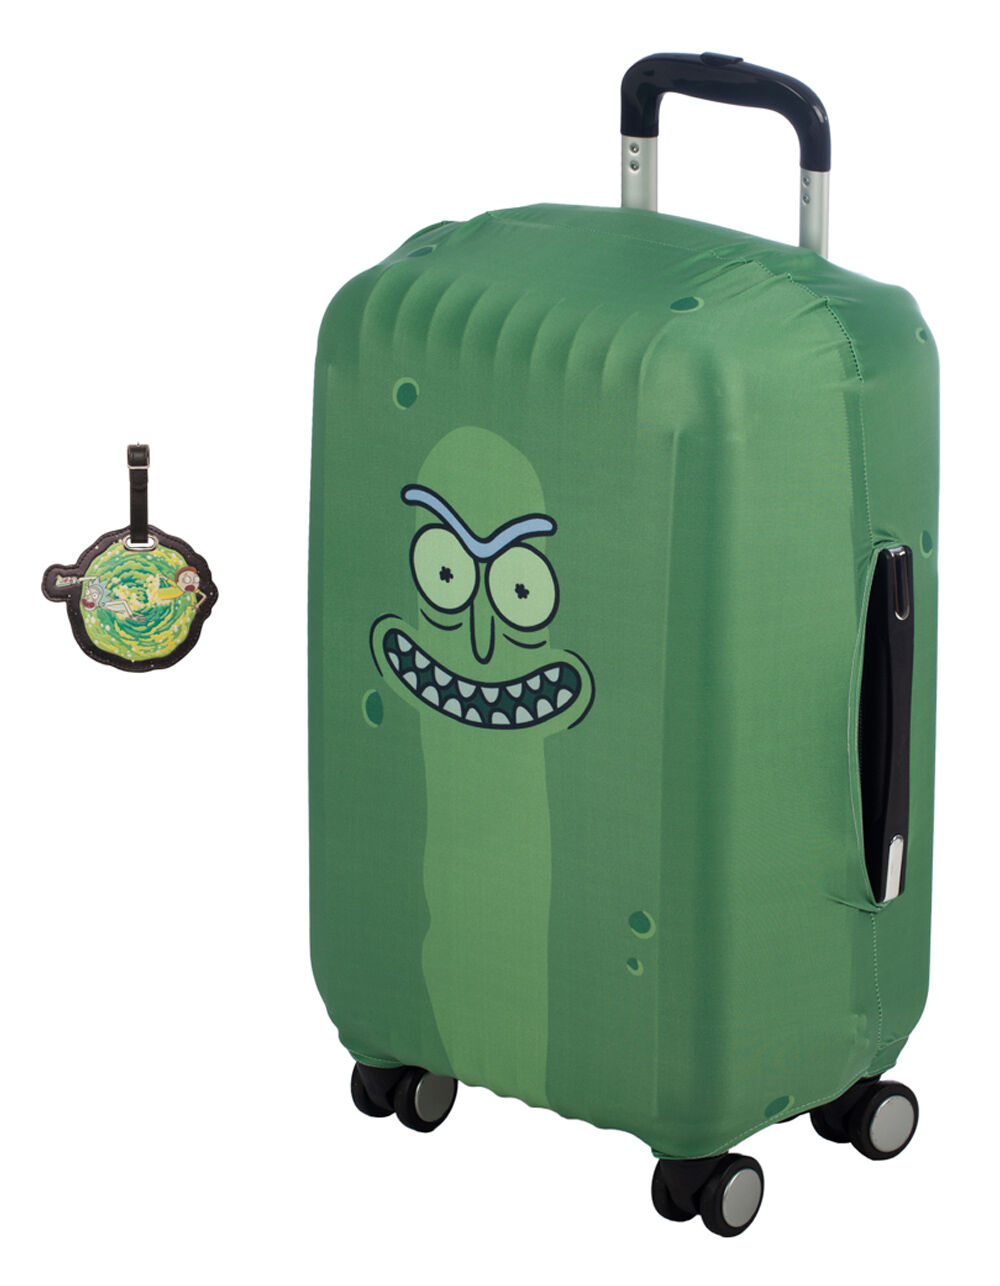 Rick And Morty Luggage Tag & Sleeve Travel Pack